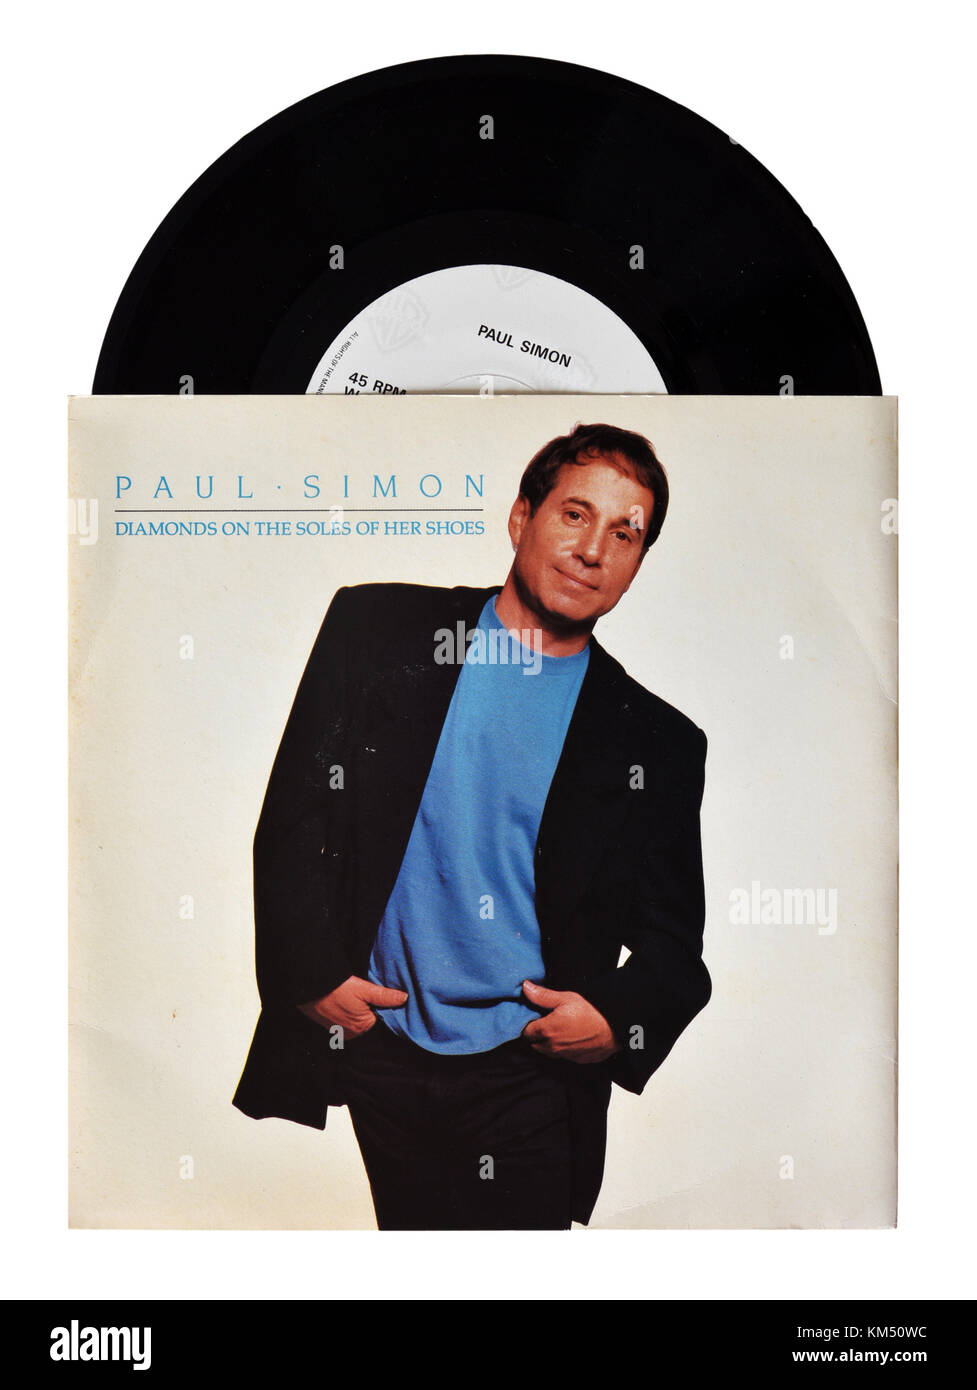 Paul Simon Diamonds on the Soles of her Shoes seven inch single - Stock Image